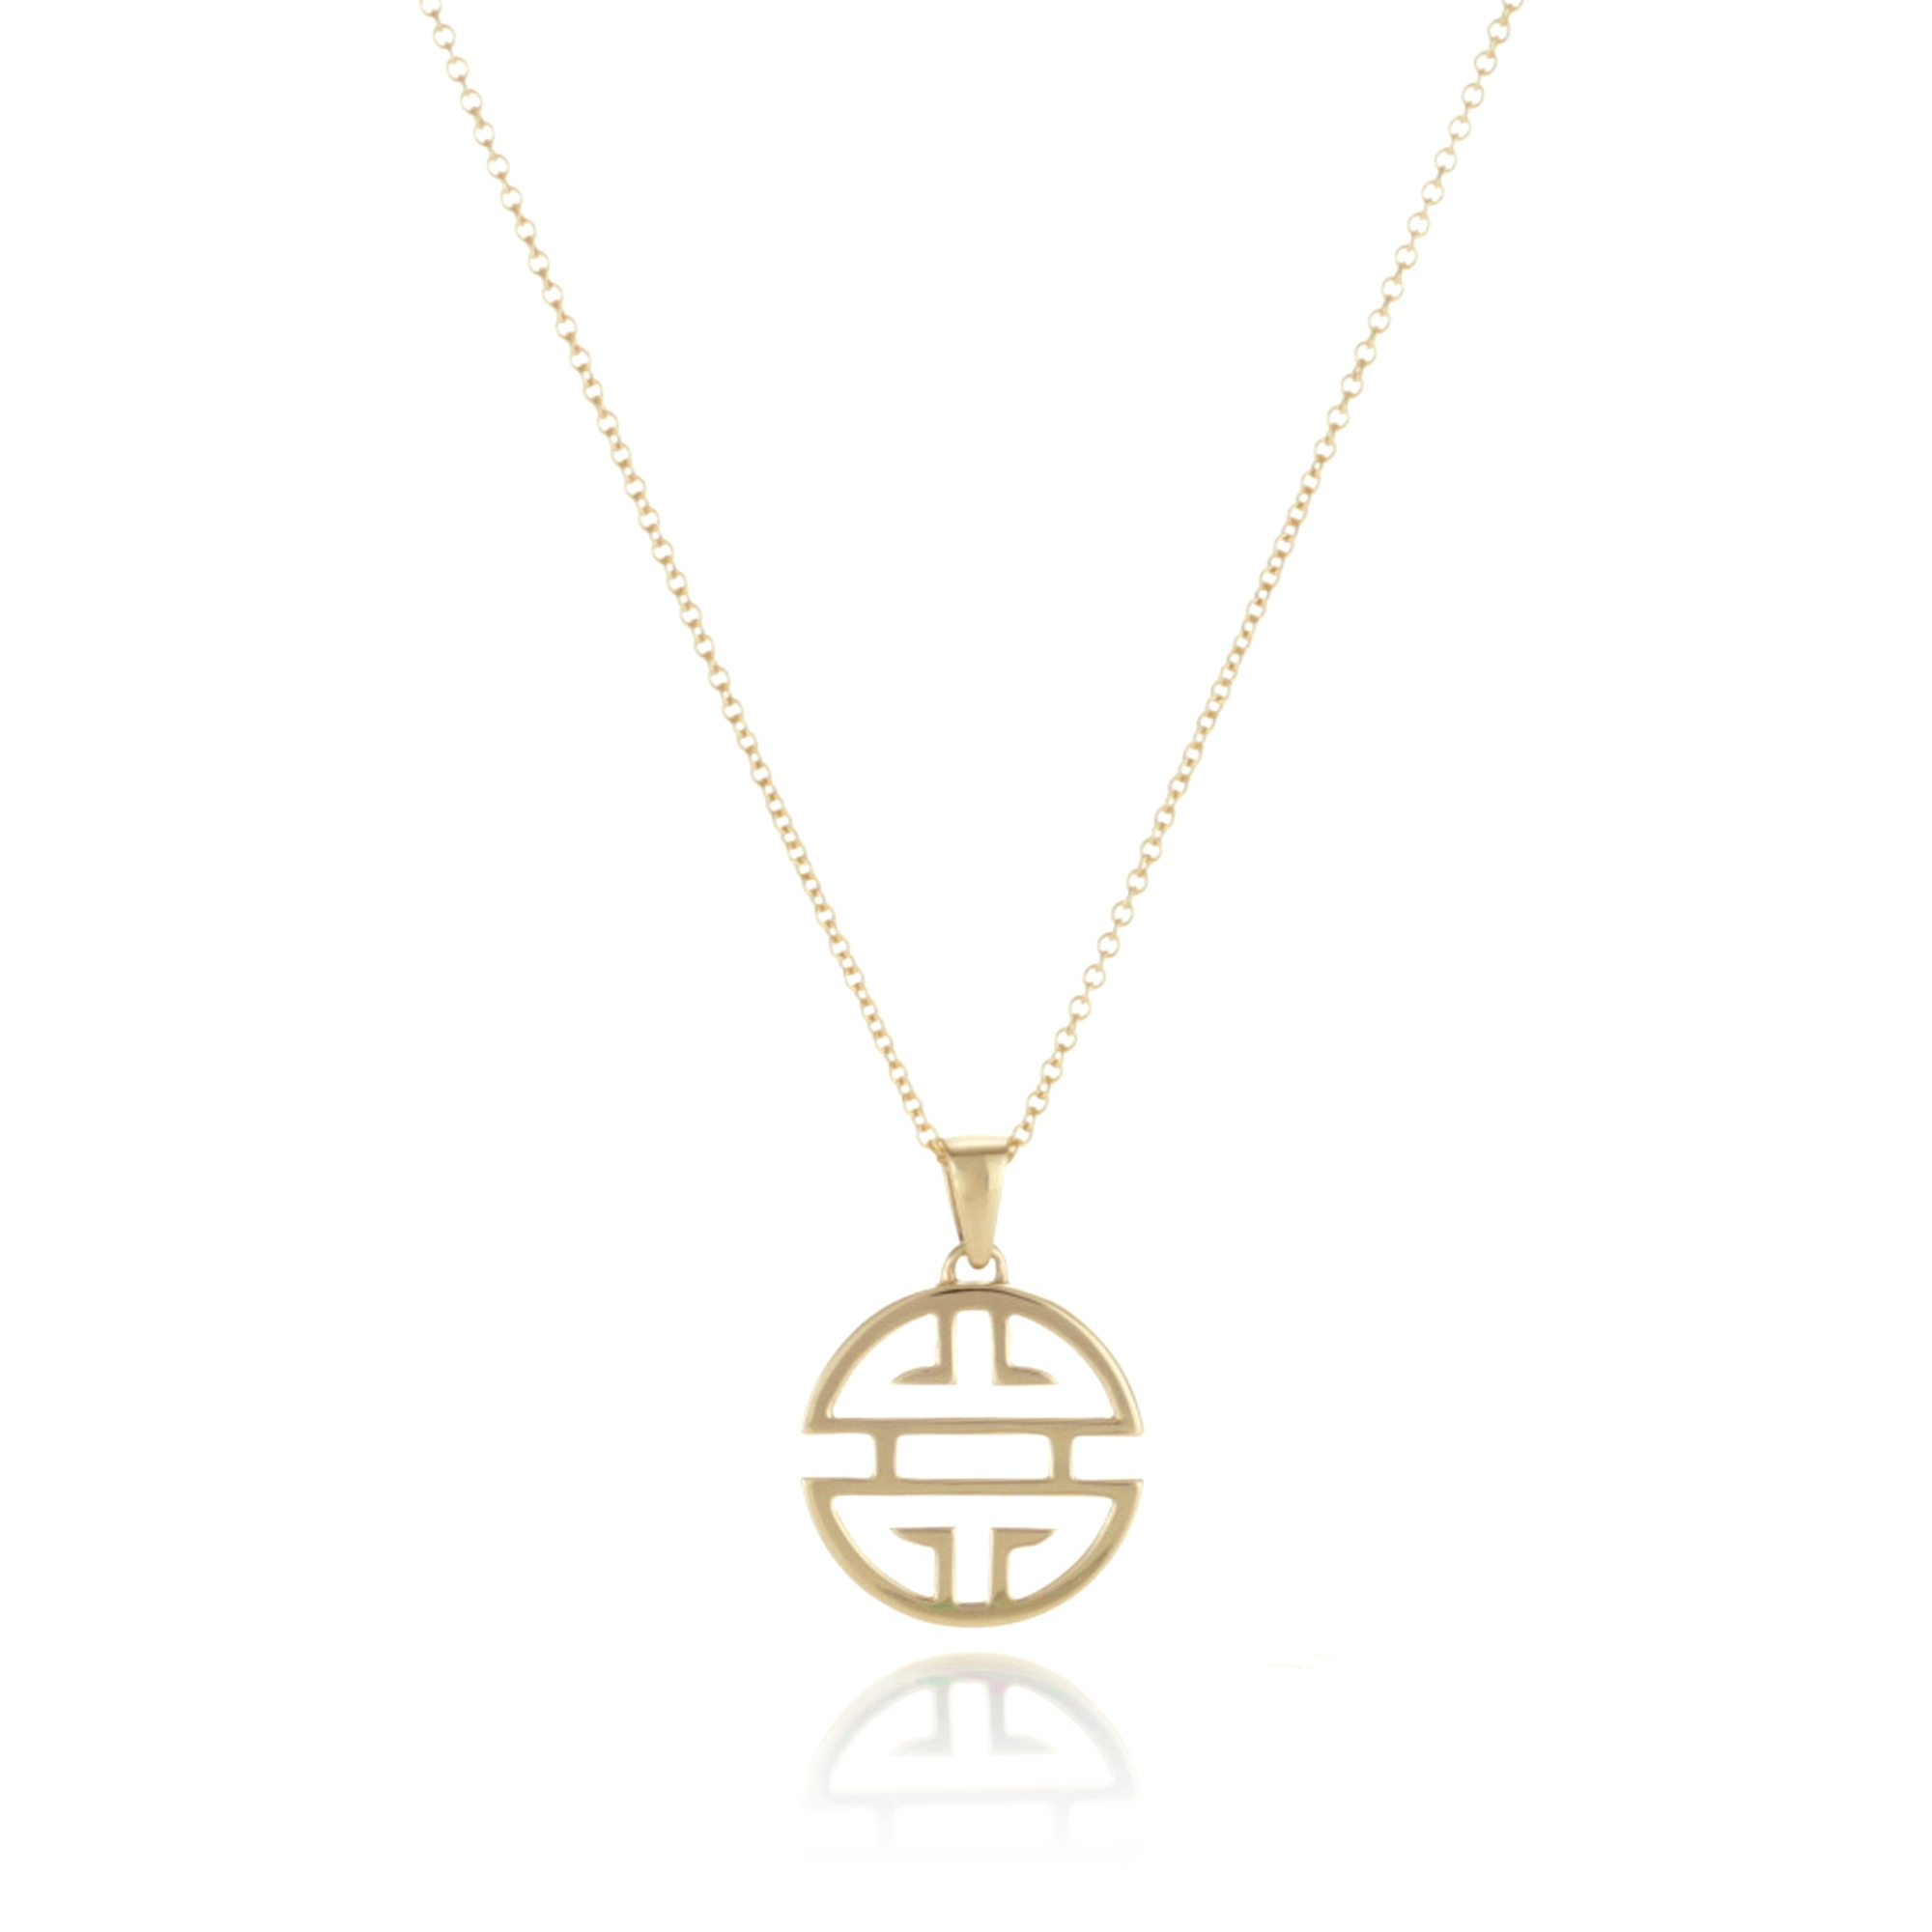 Gump's Shou Gold Small Pendant Necklace